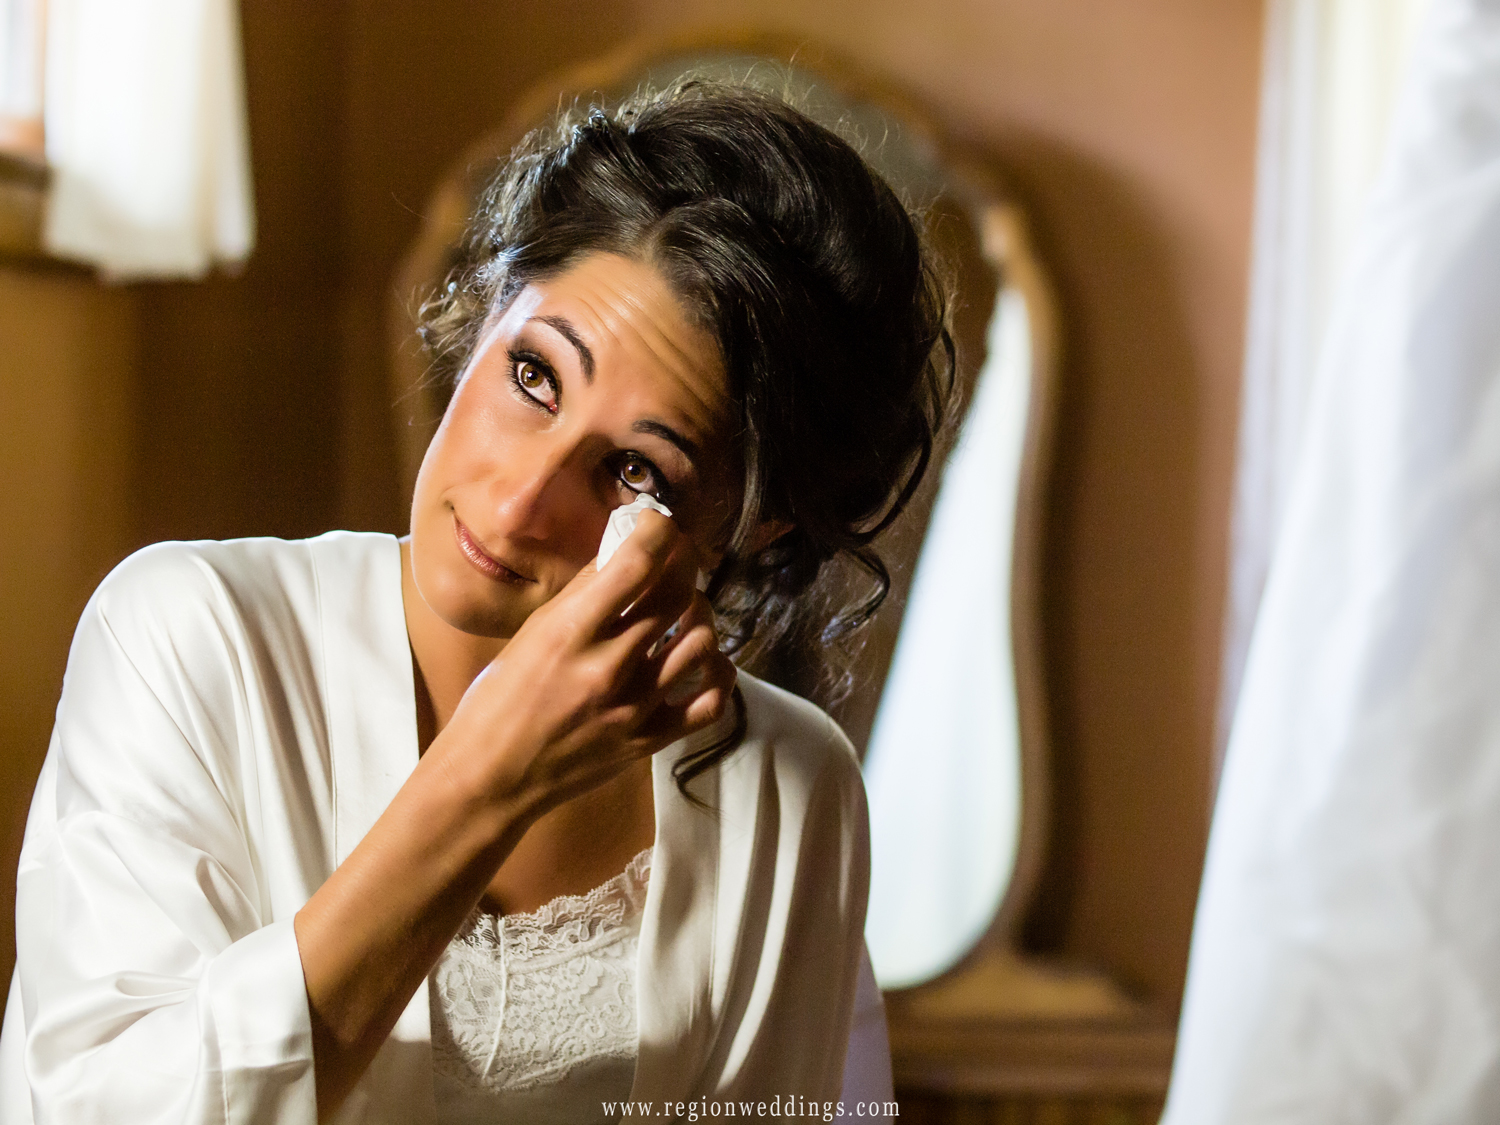 The bride wipes away happy tears on the morning of her wedding.